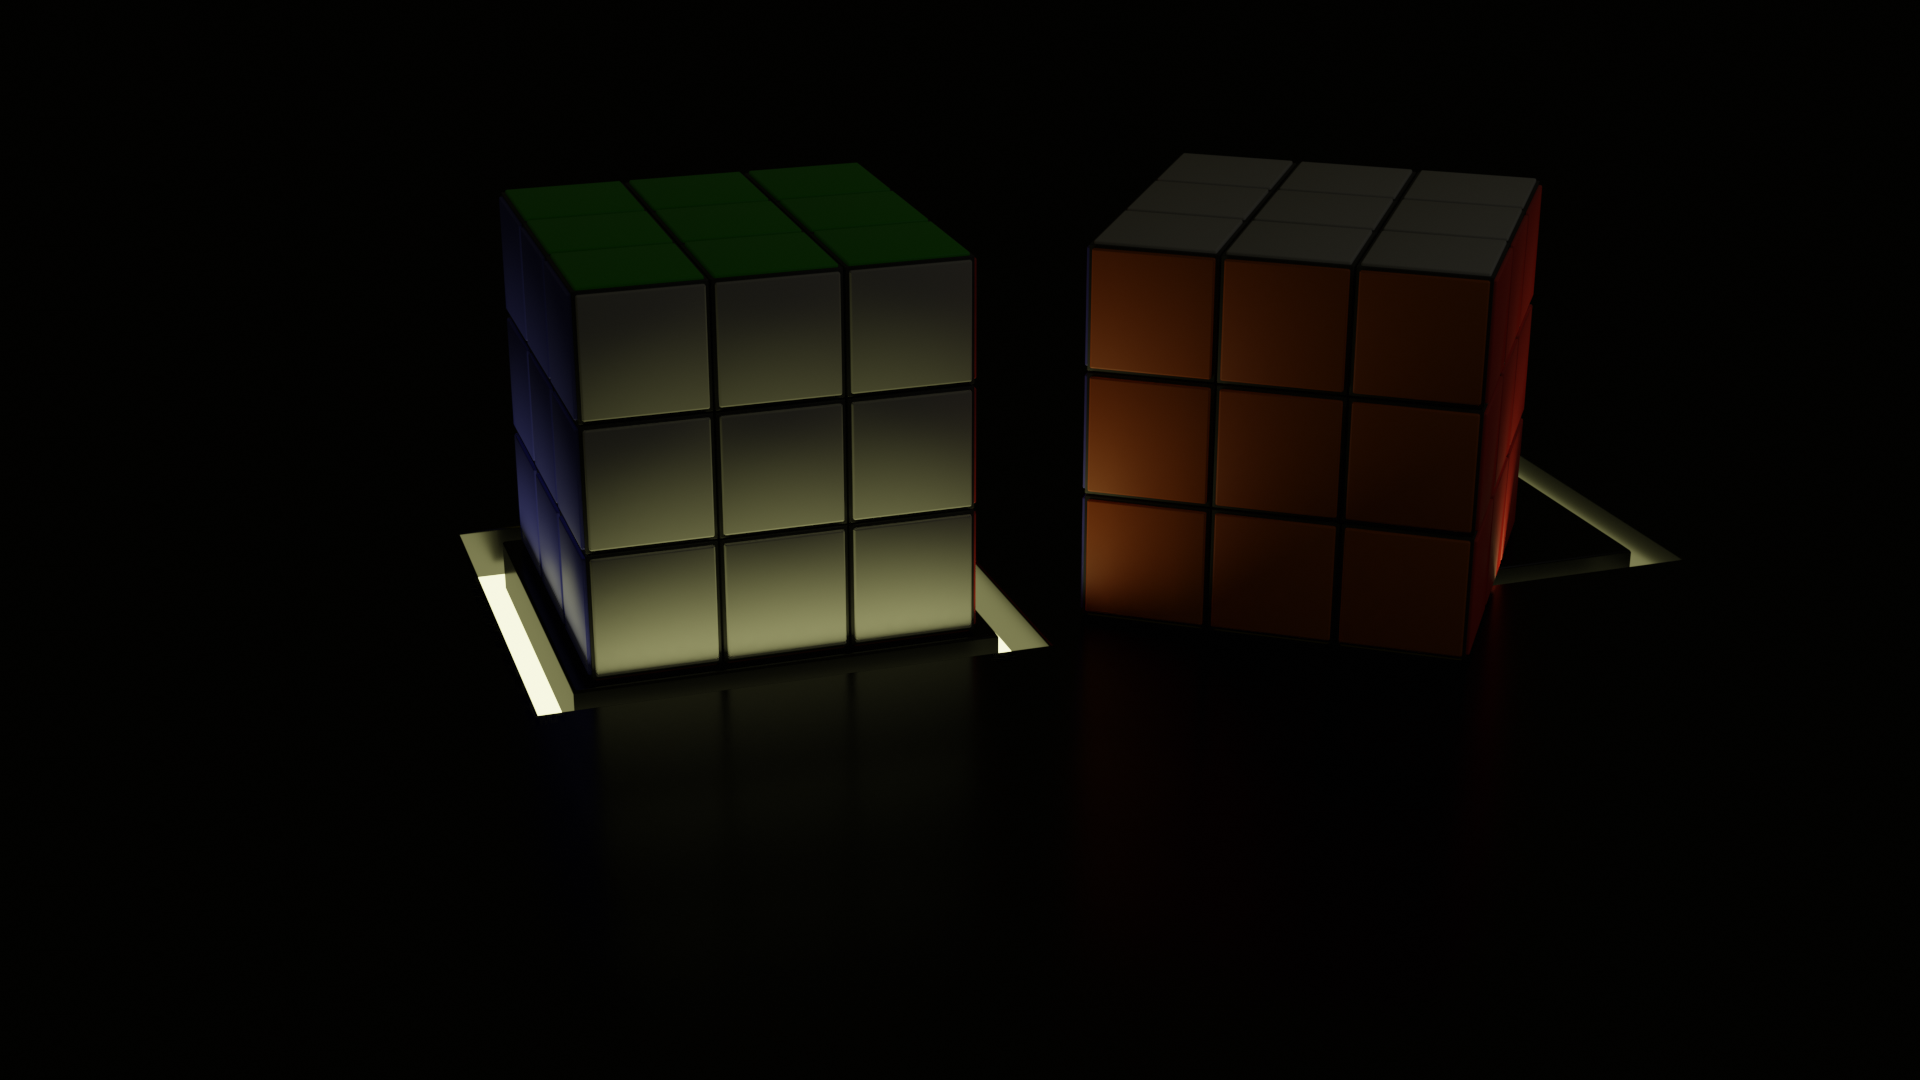 Rubik's Cube preview image 1